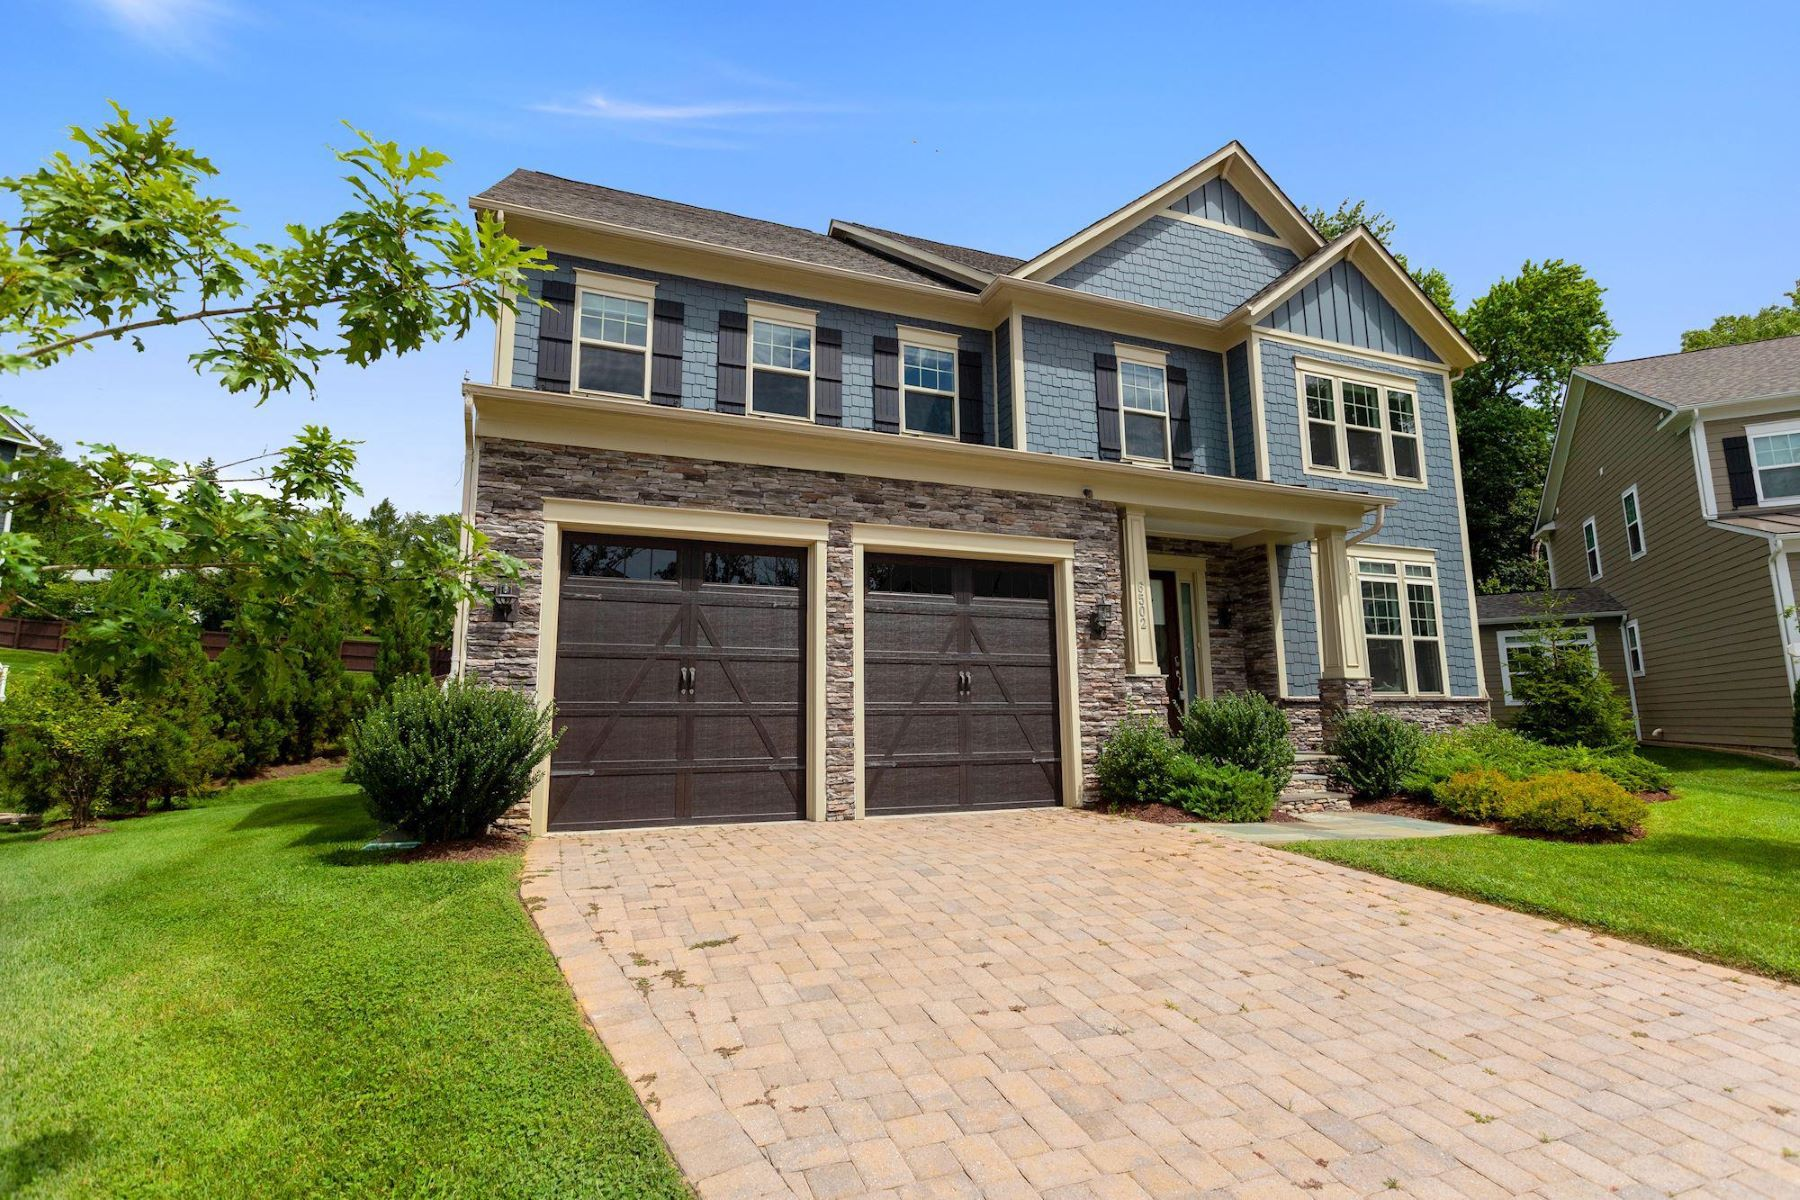 Single Family Homes for Sale at Falls Church, Virginia 22043 United States